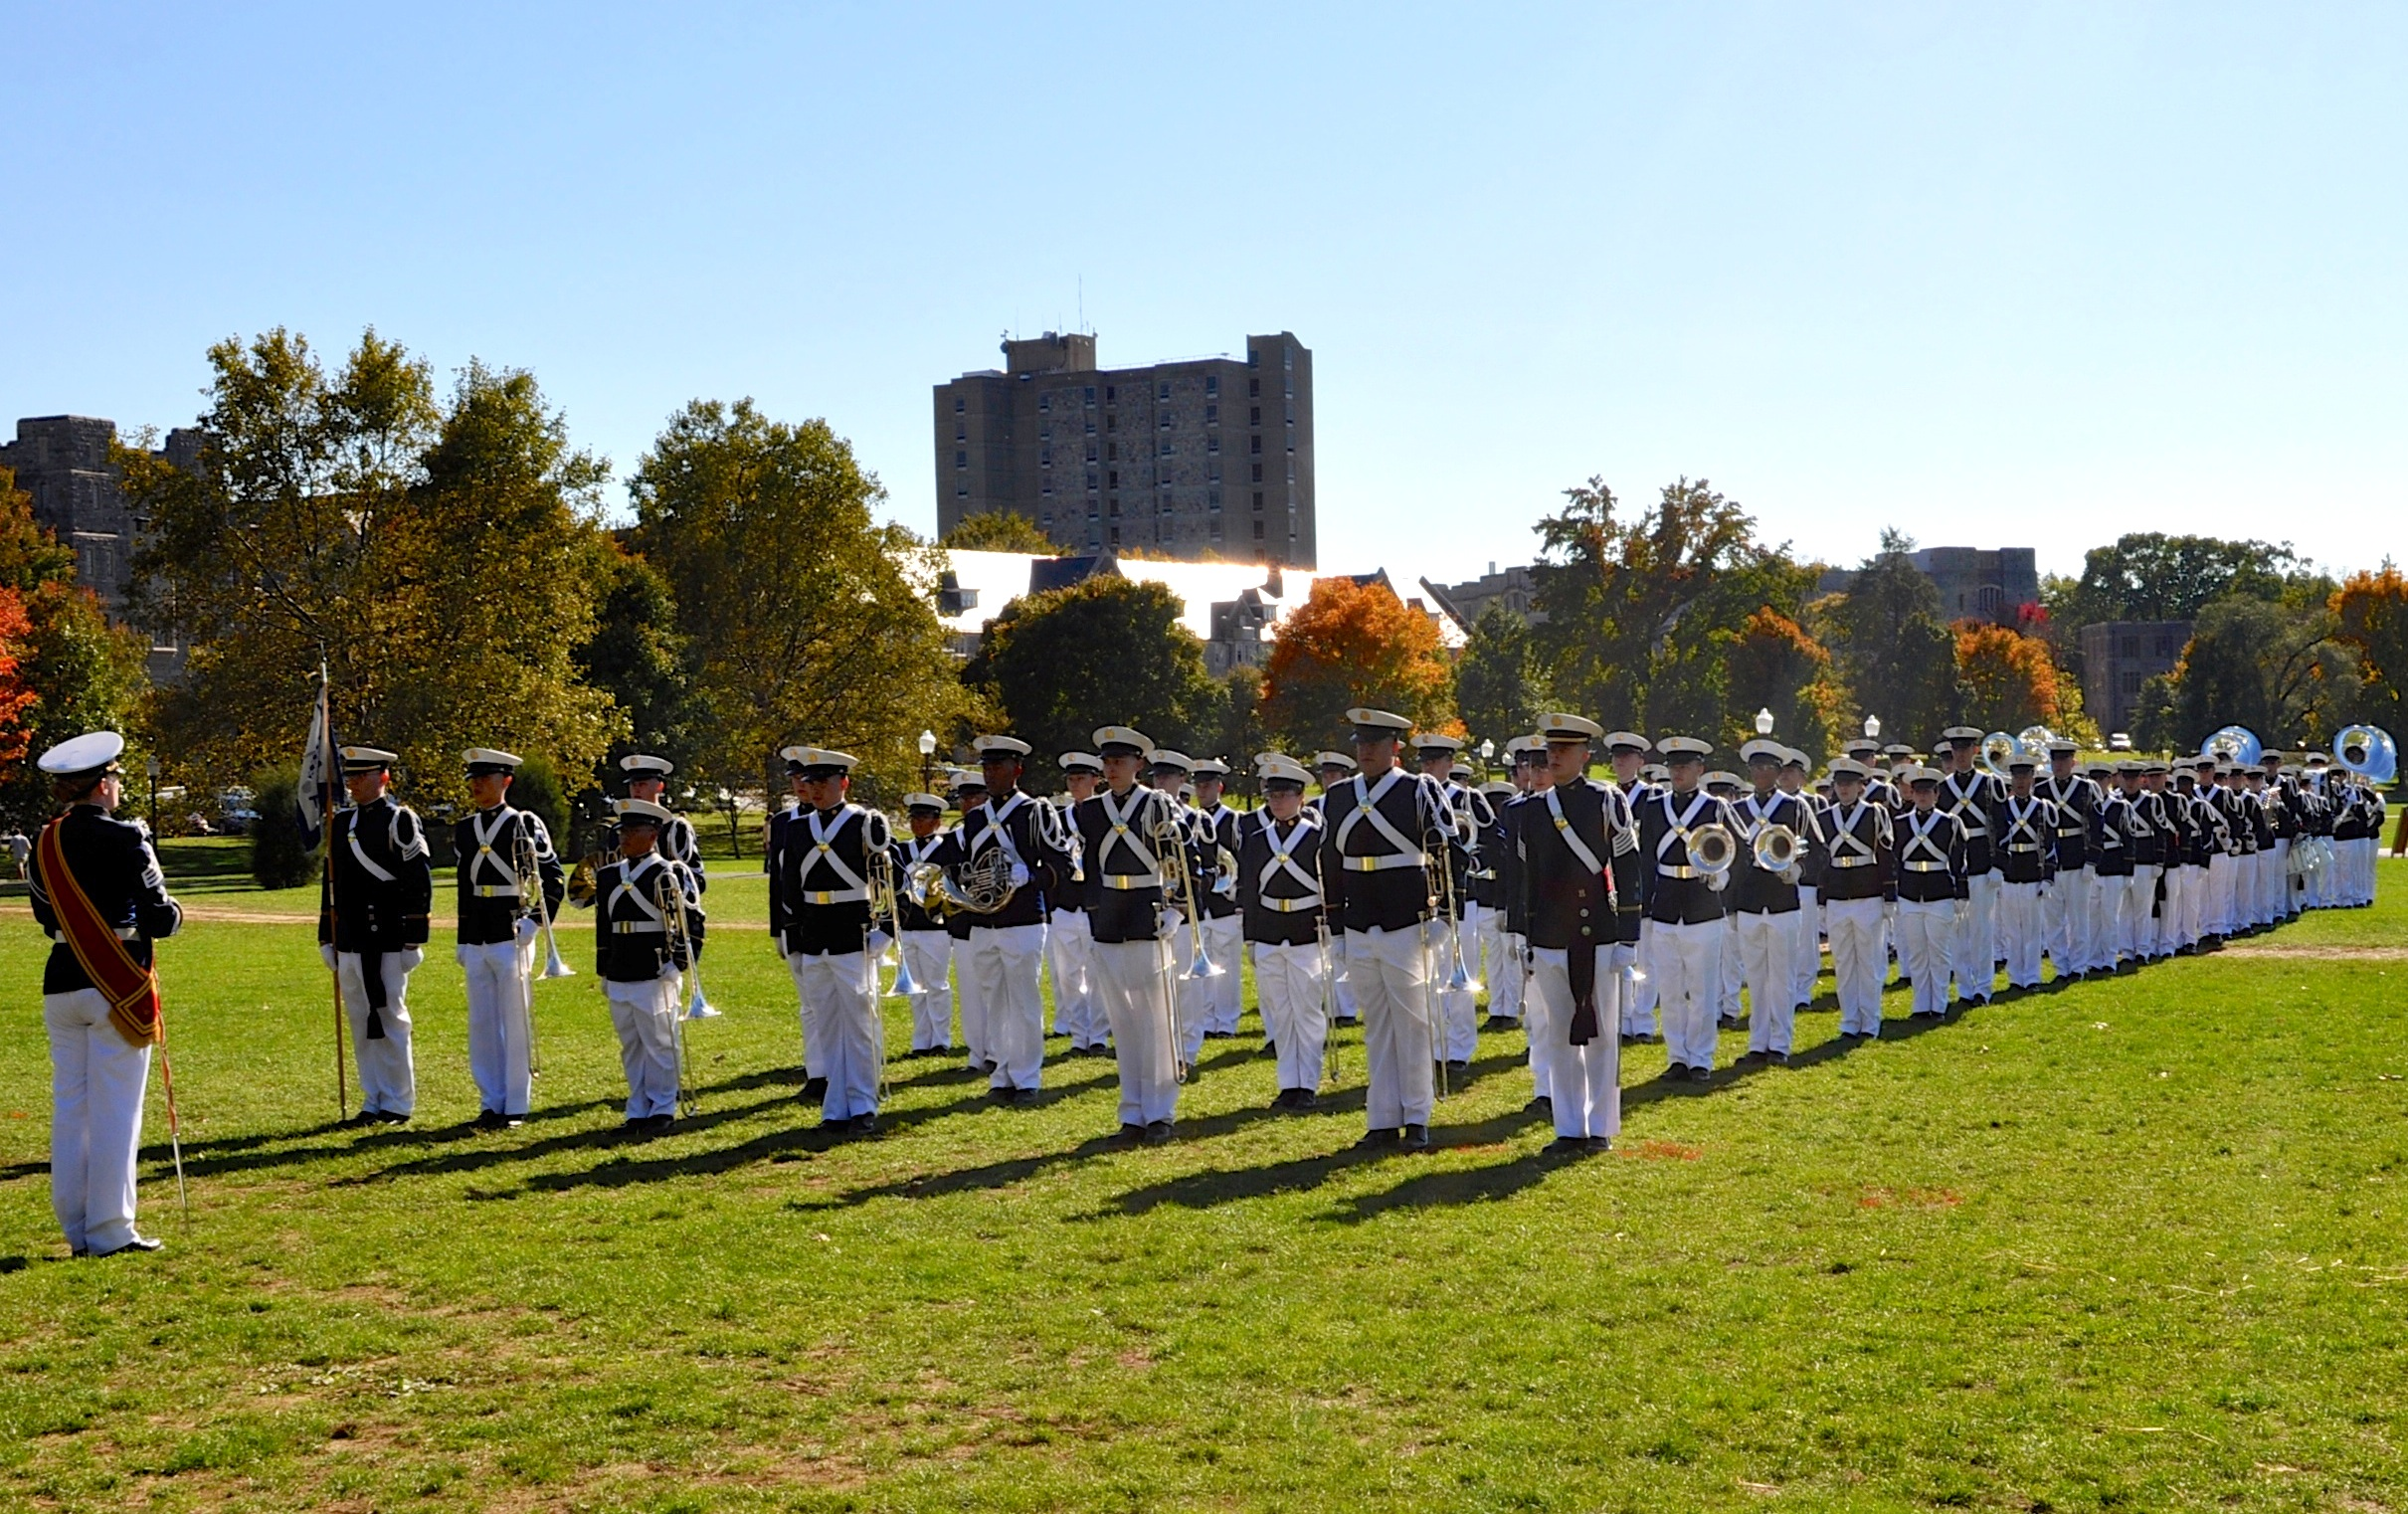 The Virginia Tech Corps of Cadets regimental band, the Highty-Tighties on the Drillfield.